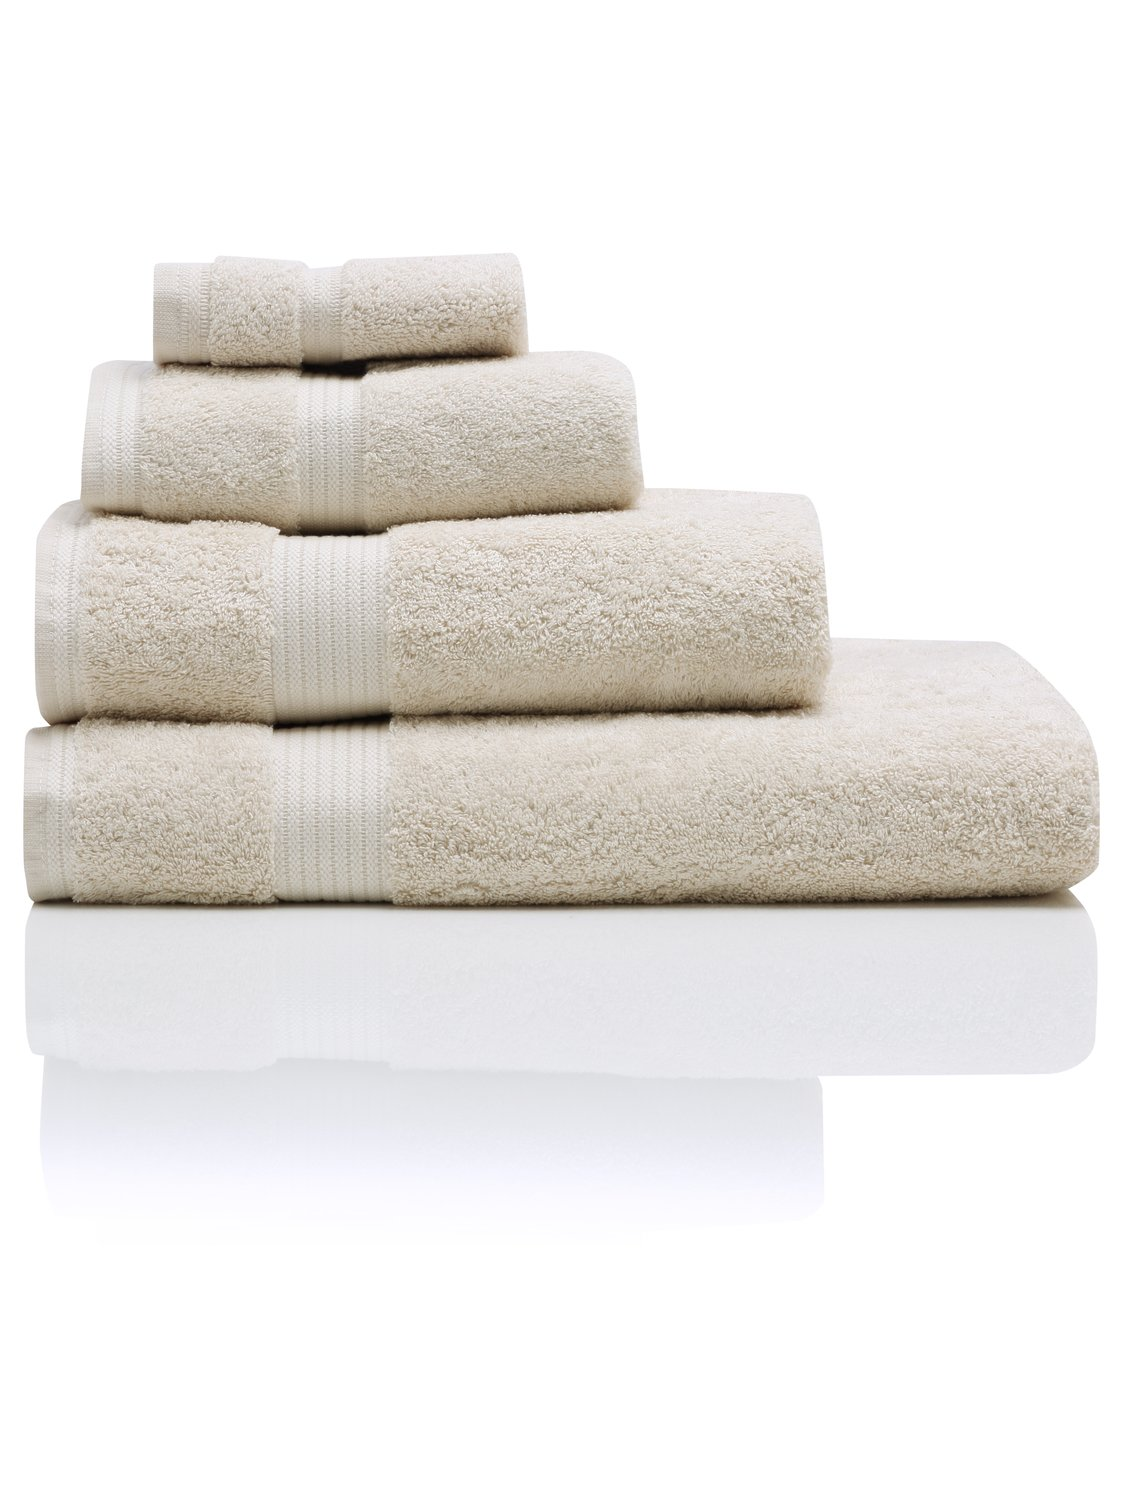 100% combed cotton 580gsm luxury soft and absorbent bath towel  - stone